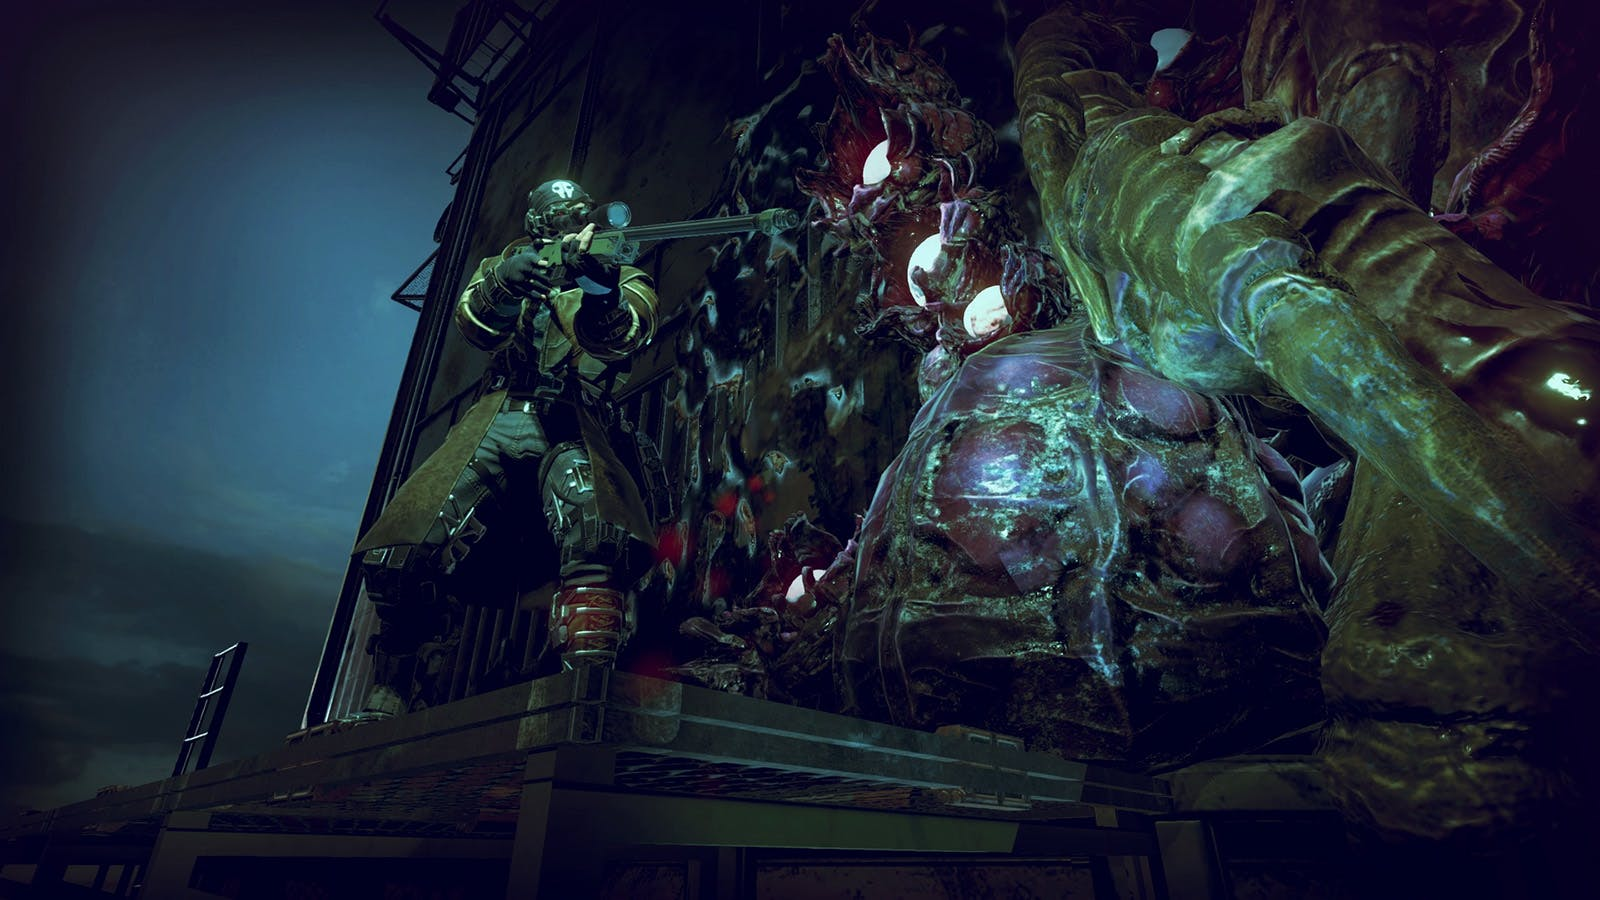 Phoenix Point is a nod to the original X-Com